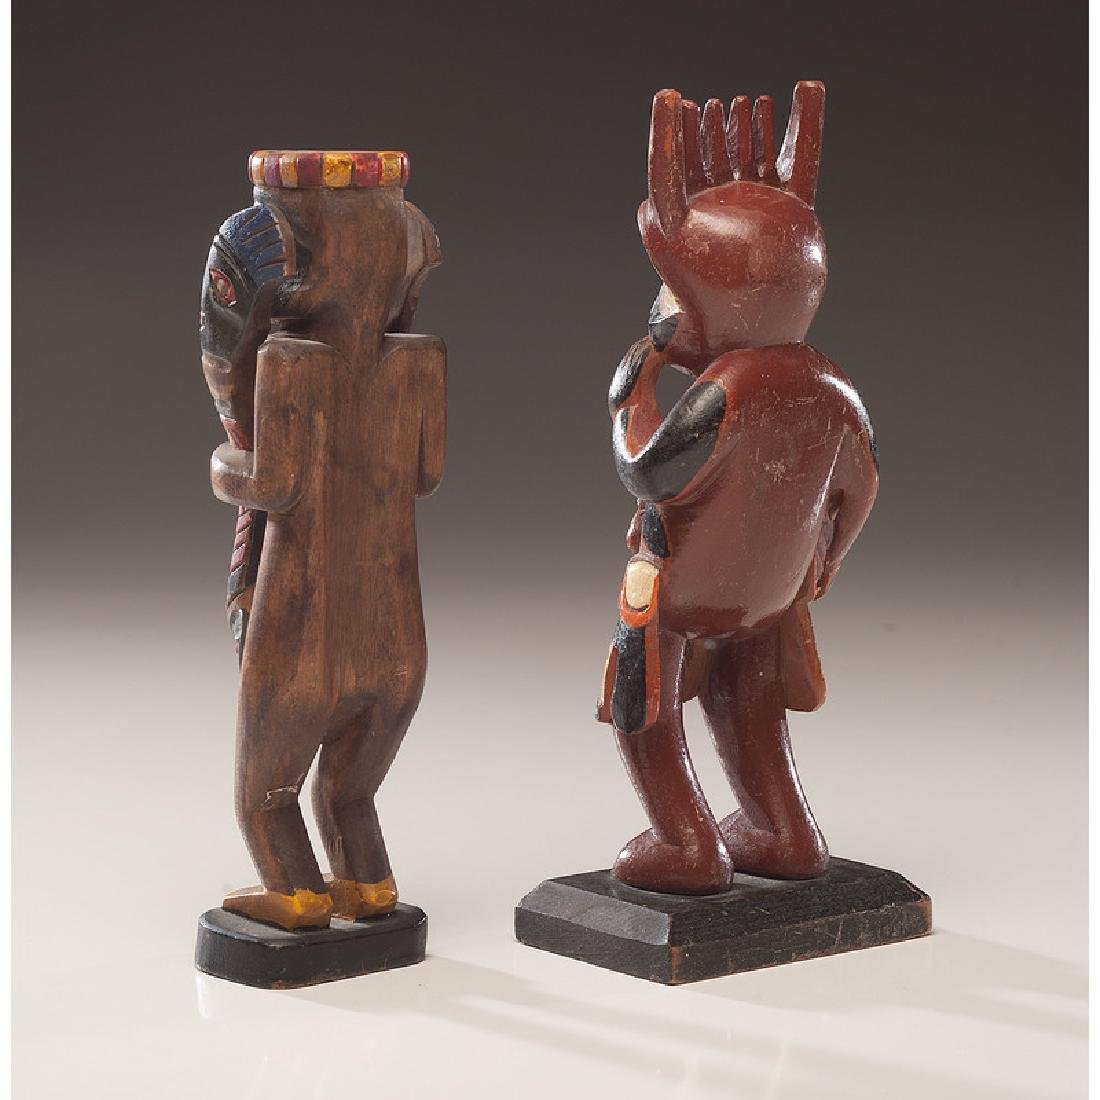 Northwest Coast Painted Wood Carvings with Nugget Shop - 3